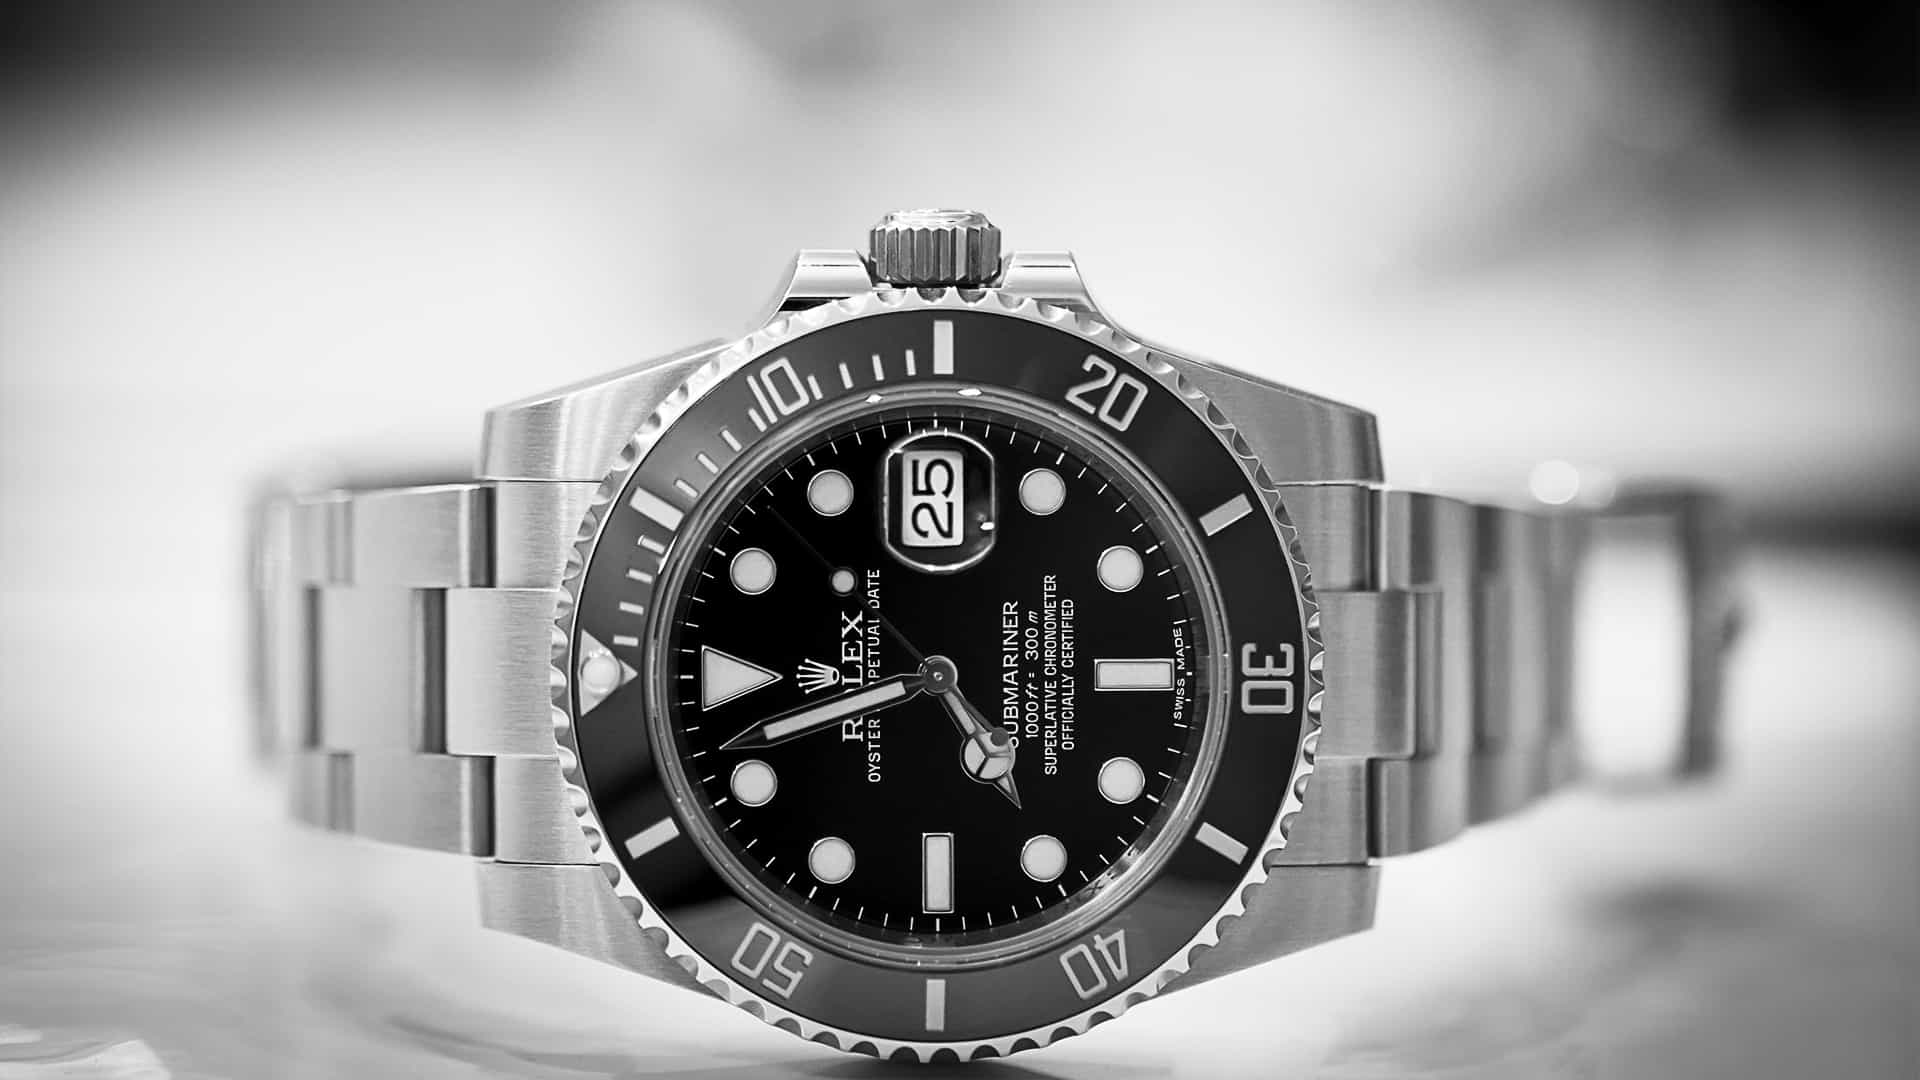 9 Rolex Submariner Alternatives Under $500 You'll Be Proud To Wear